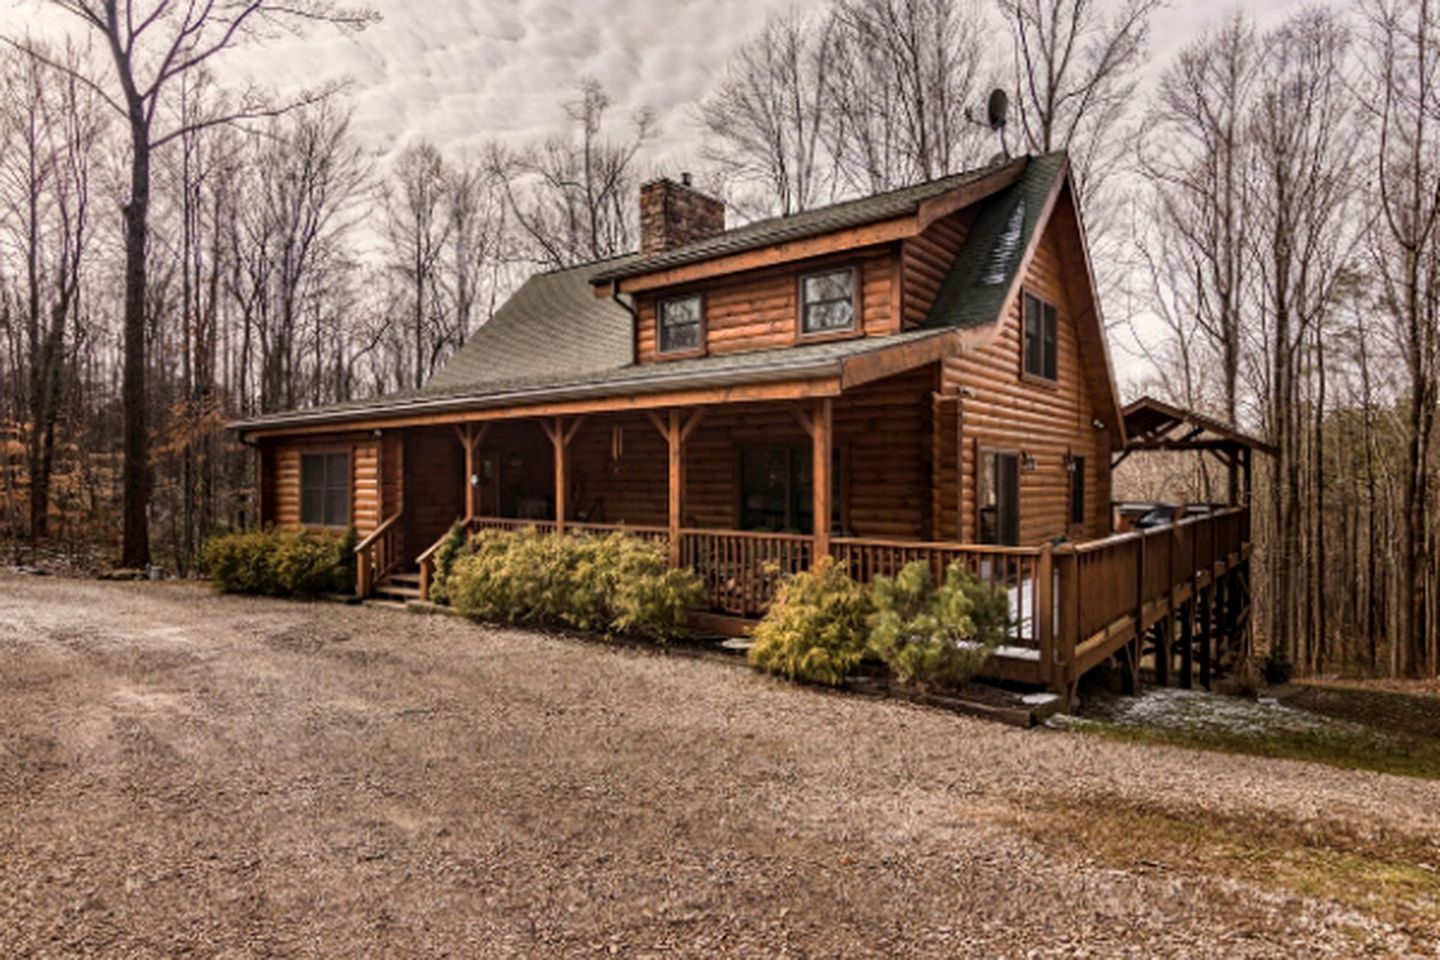 Luxury cabin rental with hot tub near Logan, Ohio